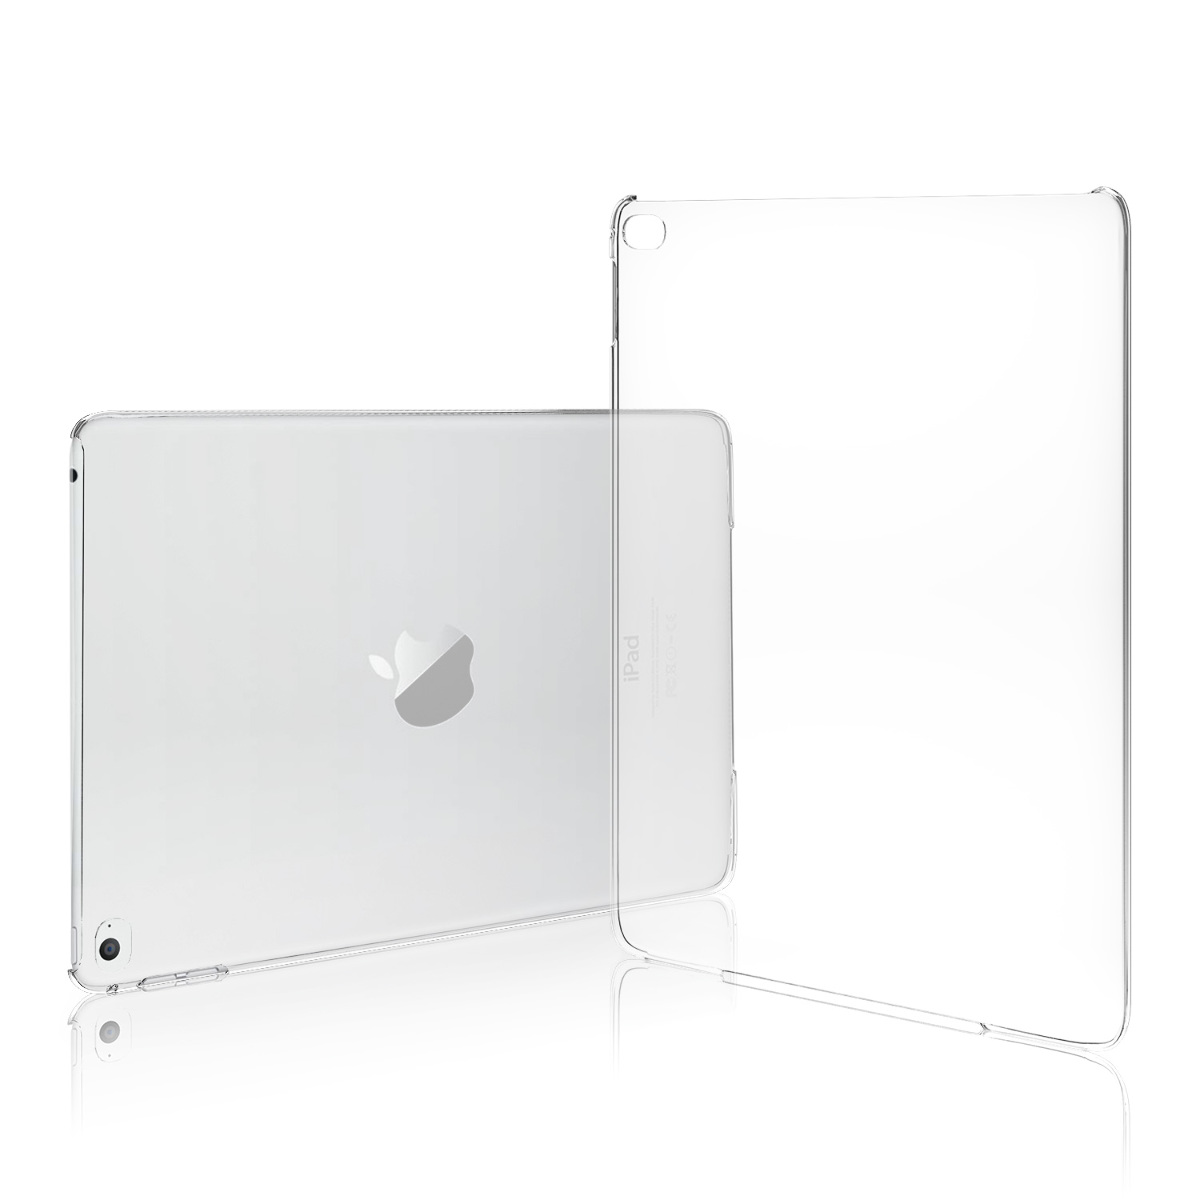 FUNDA-TRANSPARENTE-PARA-APPLE-IPAD-AIR-2-CARCASA-TRASERA-PROTECTORA-ESTUCHE